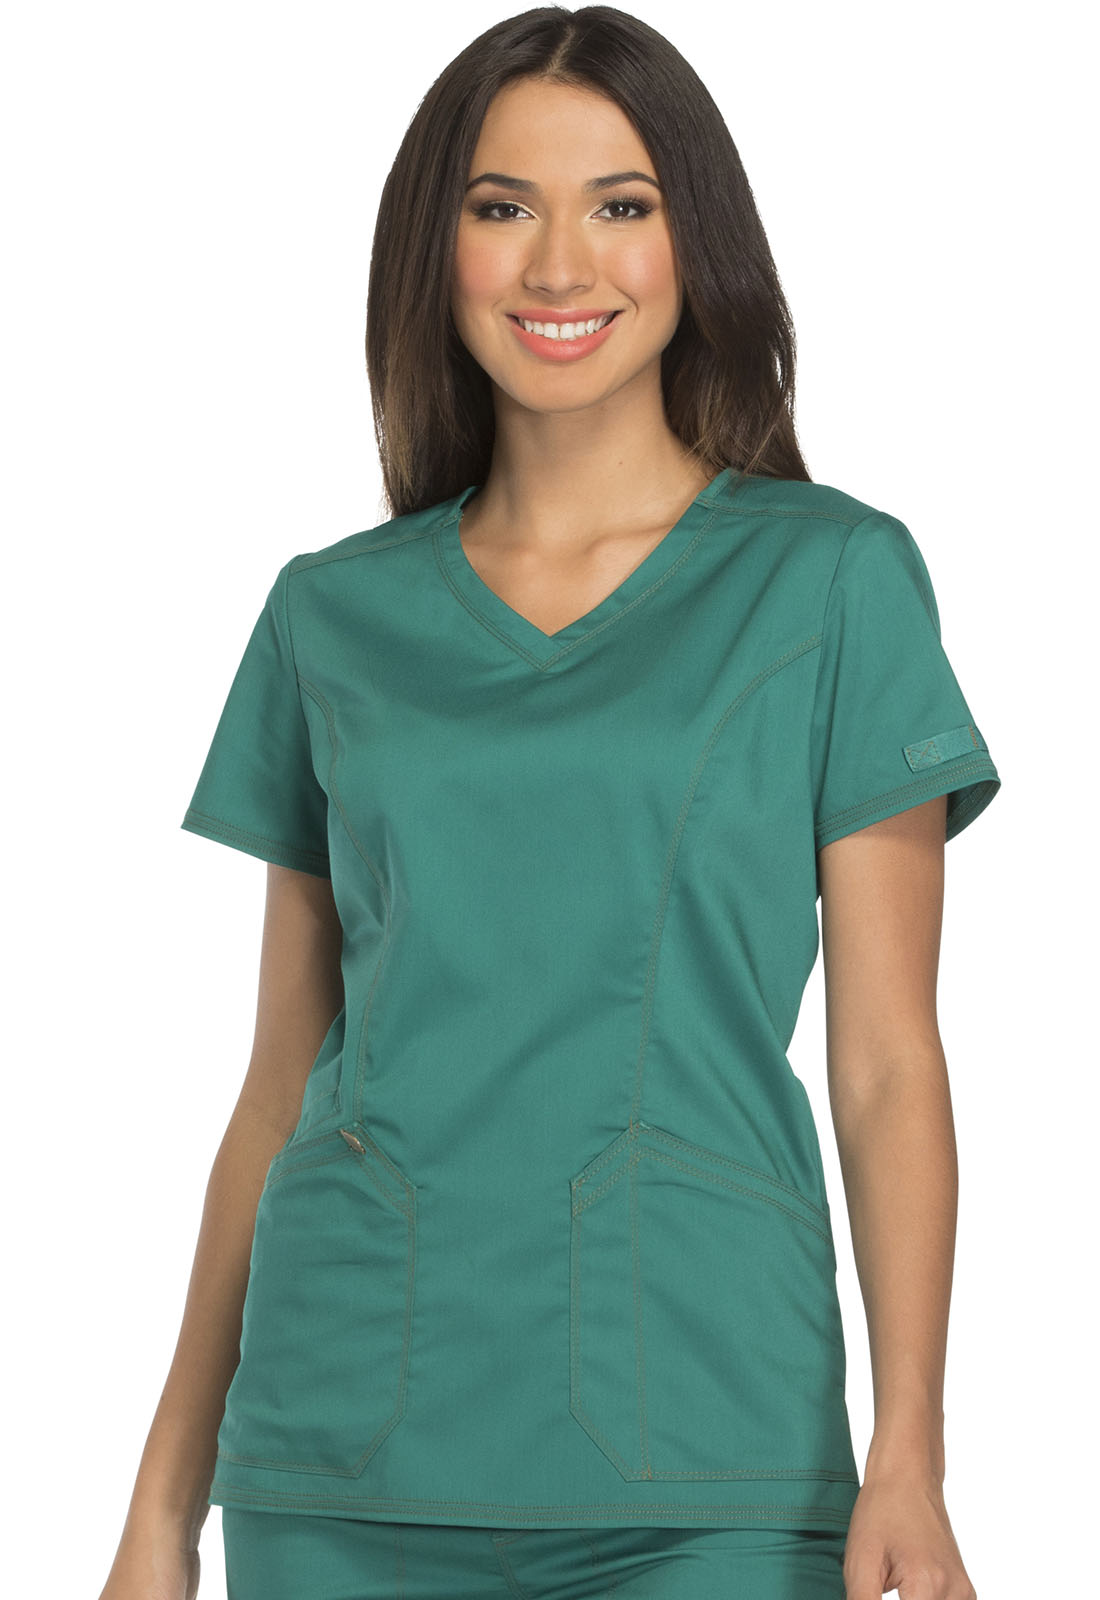 9e71d0c4 Dickies V-Neck Top (Regular) in Hunter Green from USA Scrub